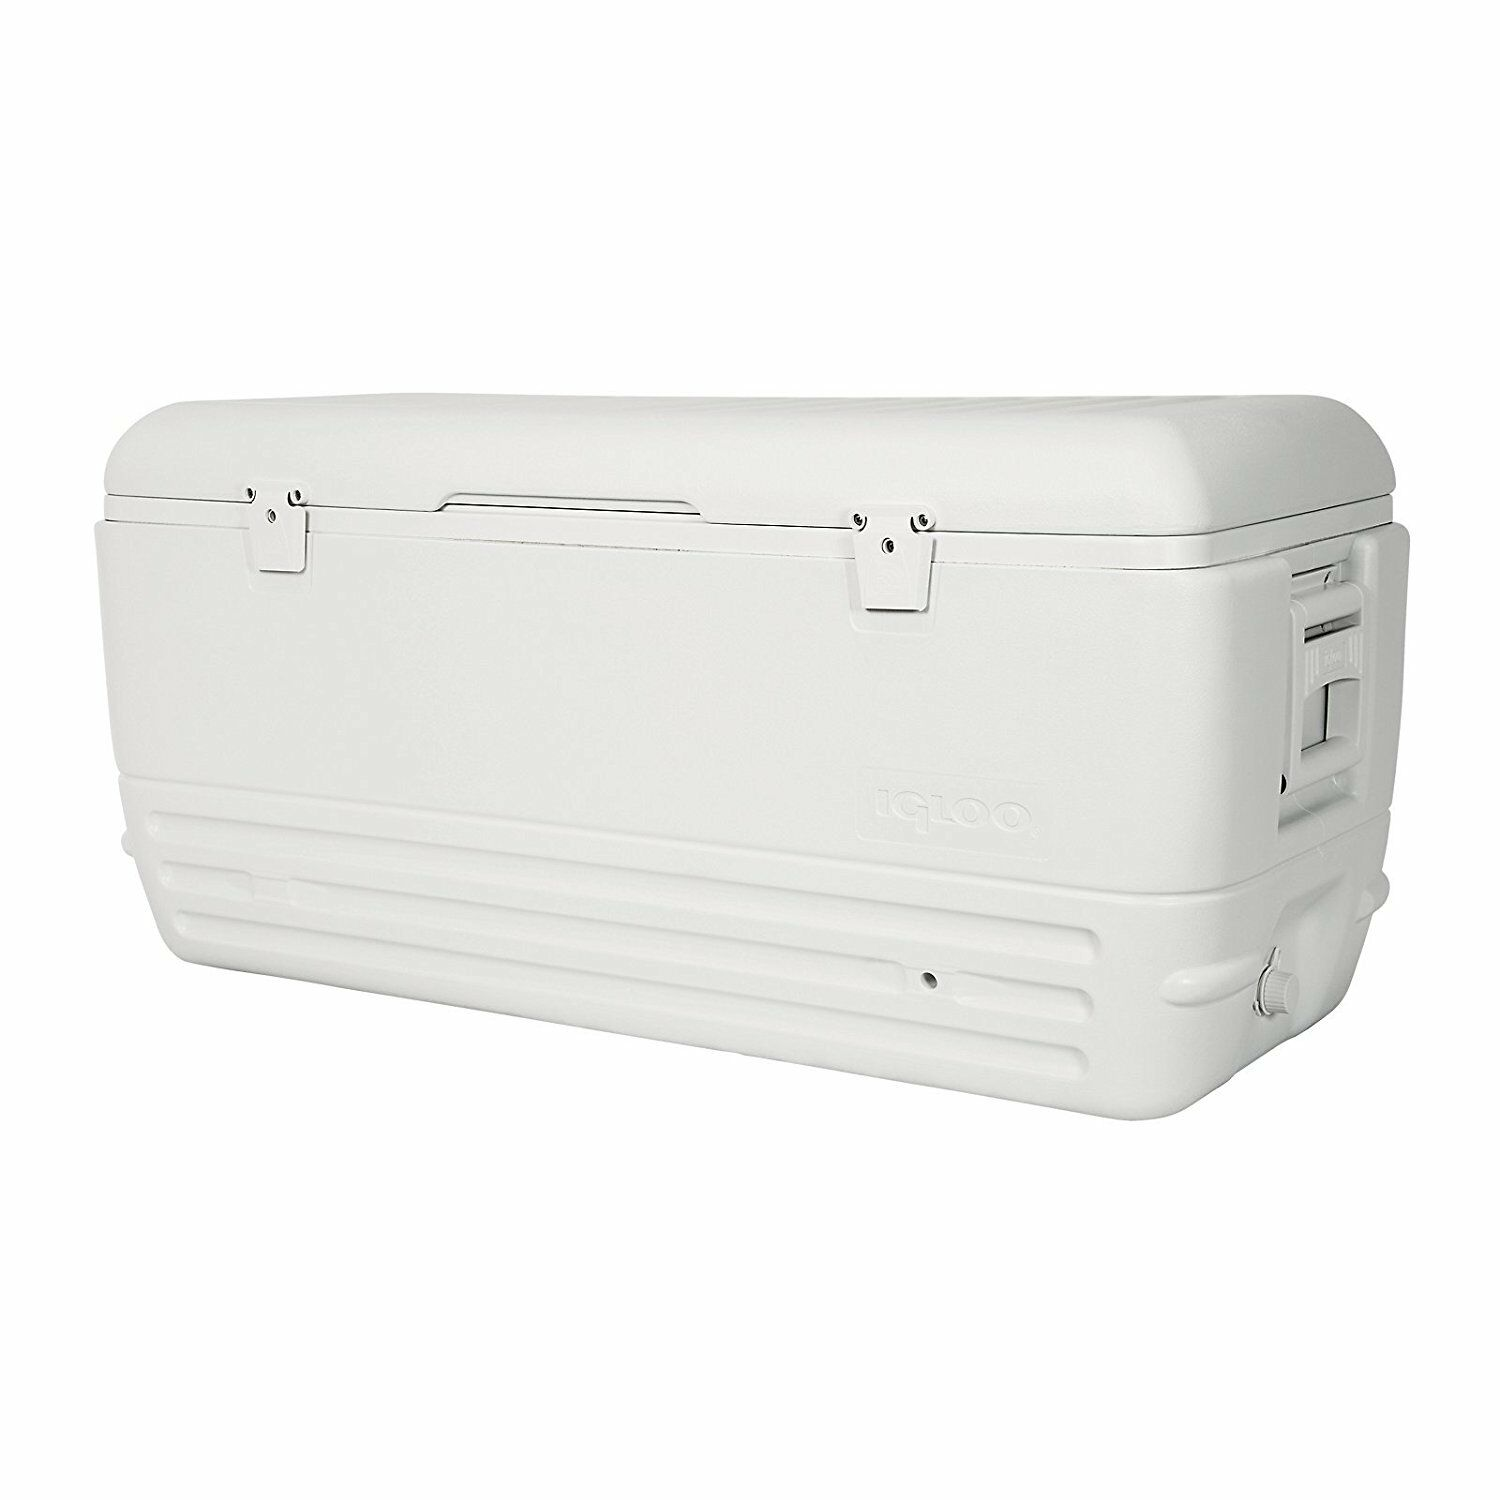 White Insulated Drink Cooler 150Qt 248 Can Storage Portable Camping  Ice Chest  famous brand